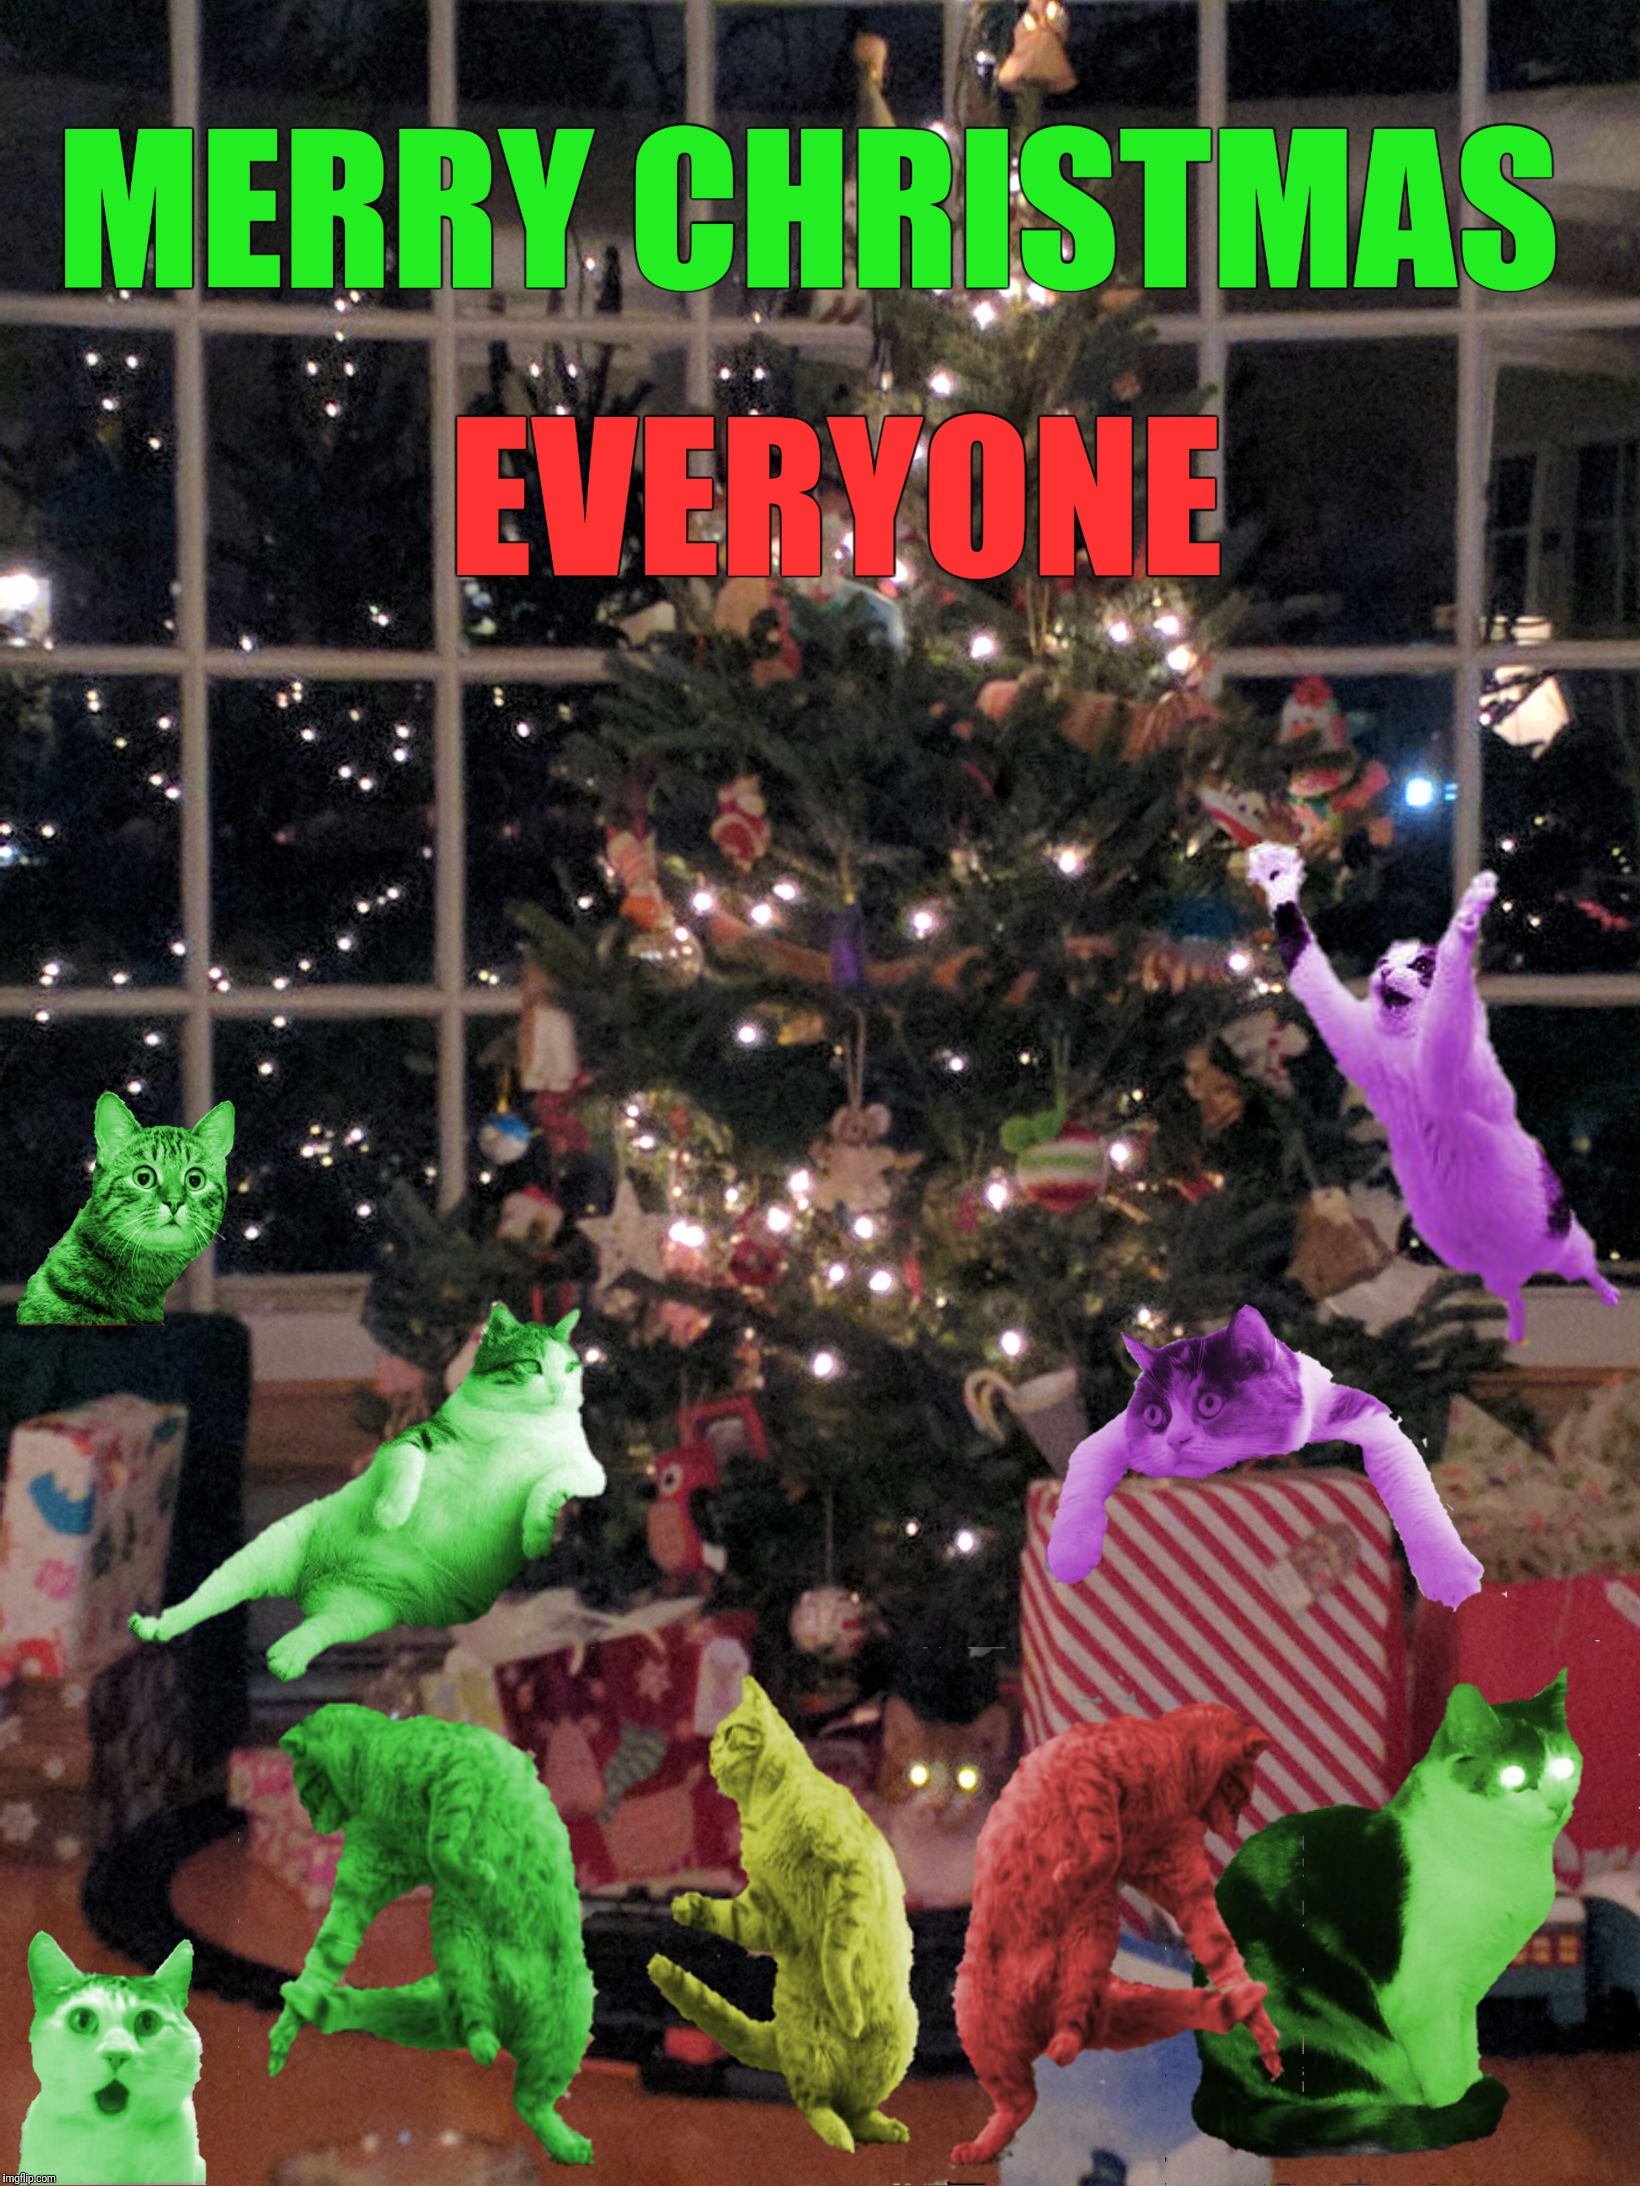 Merry Christmas to all imgflippers everywhere, and thanks to RayCat | MERRY CHRISTMAS EVERYONE | image tagged in christmas tree with cat,memes,raycat save the world,merry christmas,imgflip | made w/ Imgflip meme maker